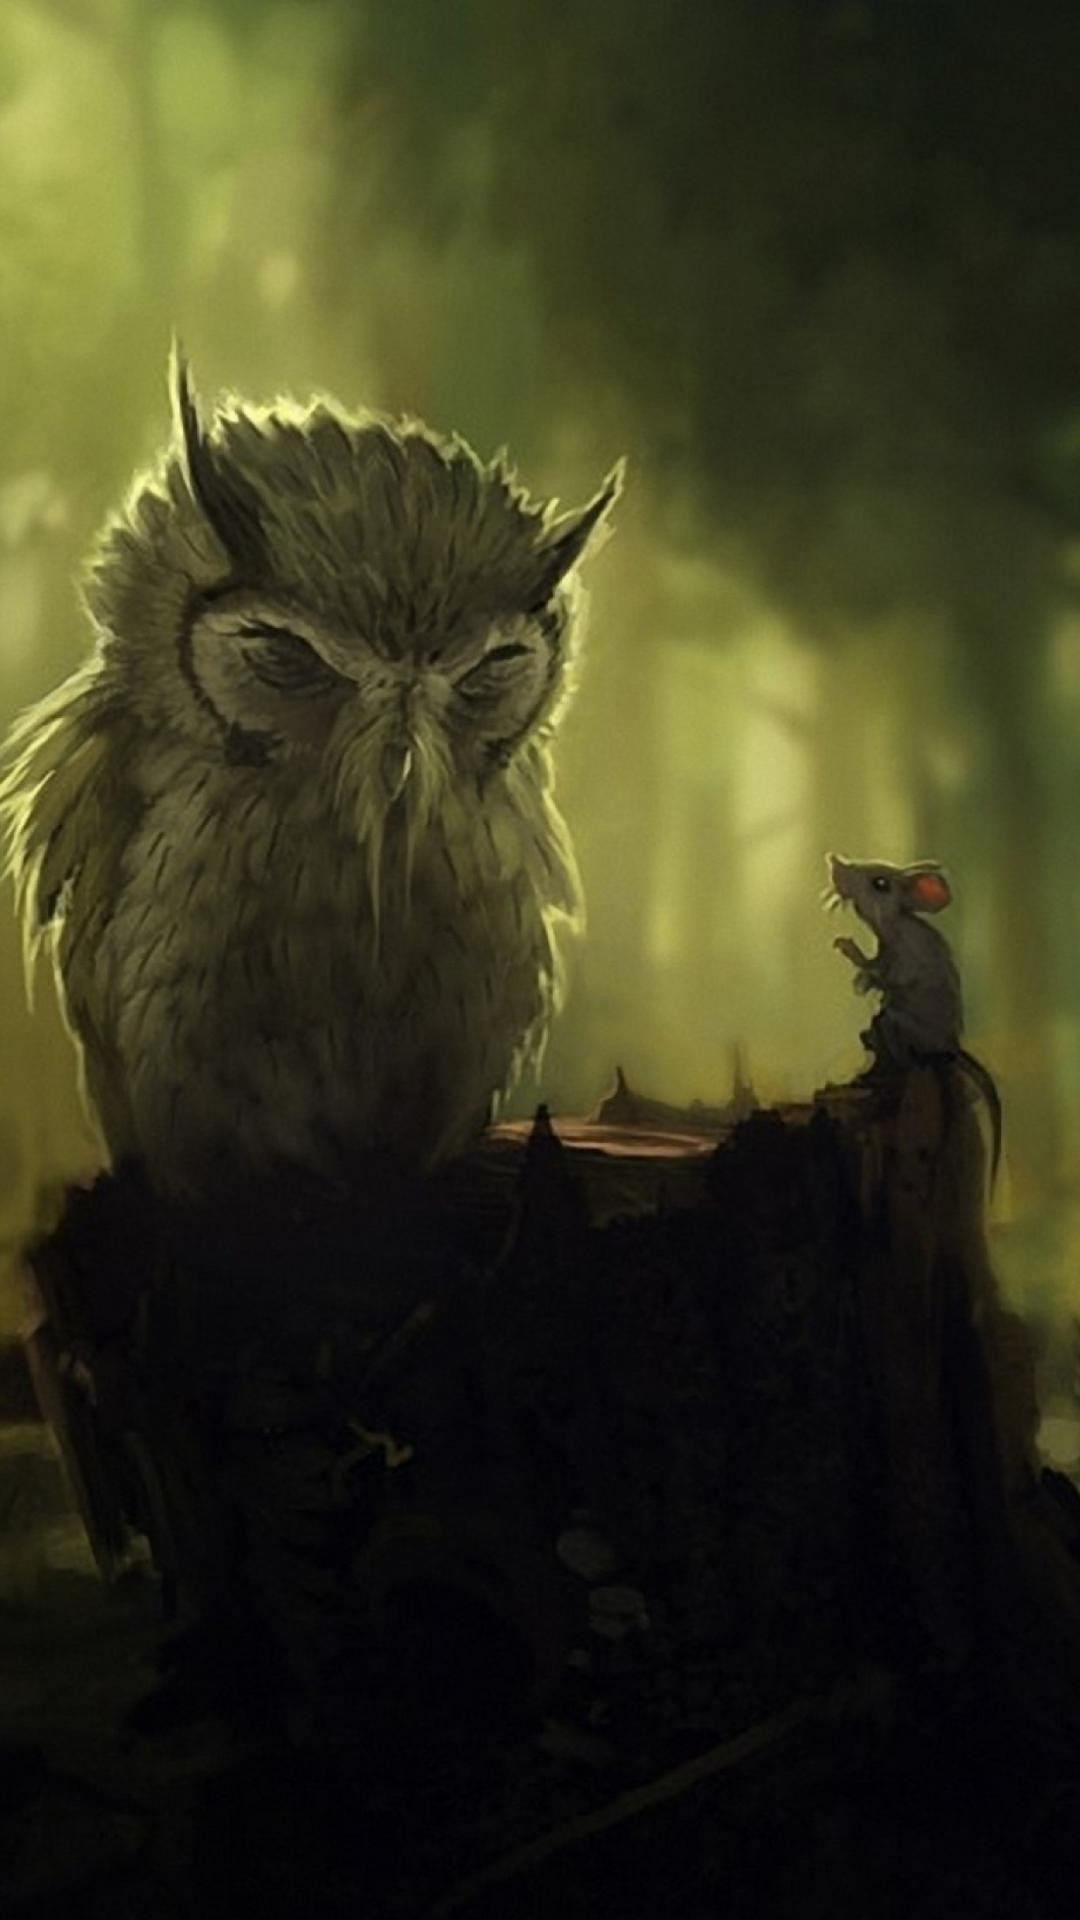 wallpaper.wiki-Cute-Owl-Wallpaper-Widescreen-for-Android-